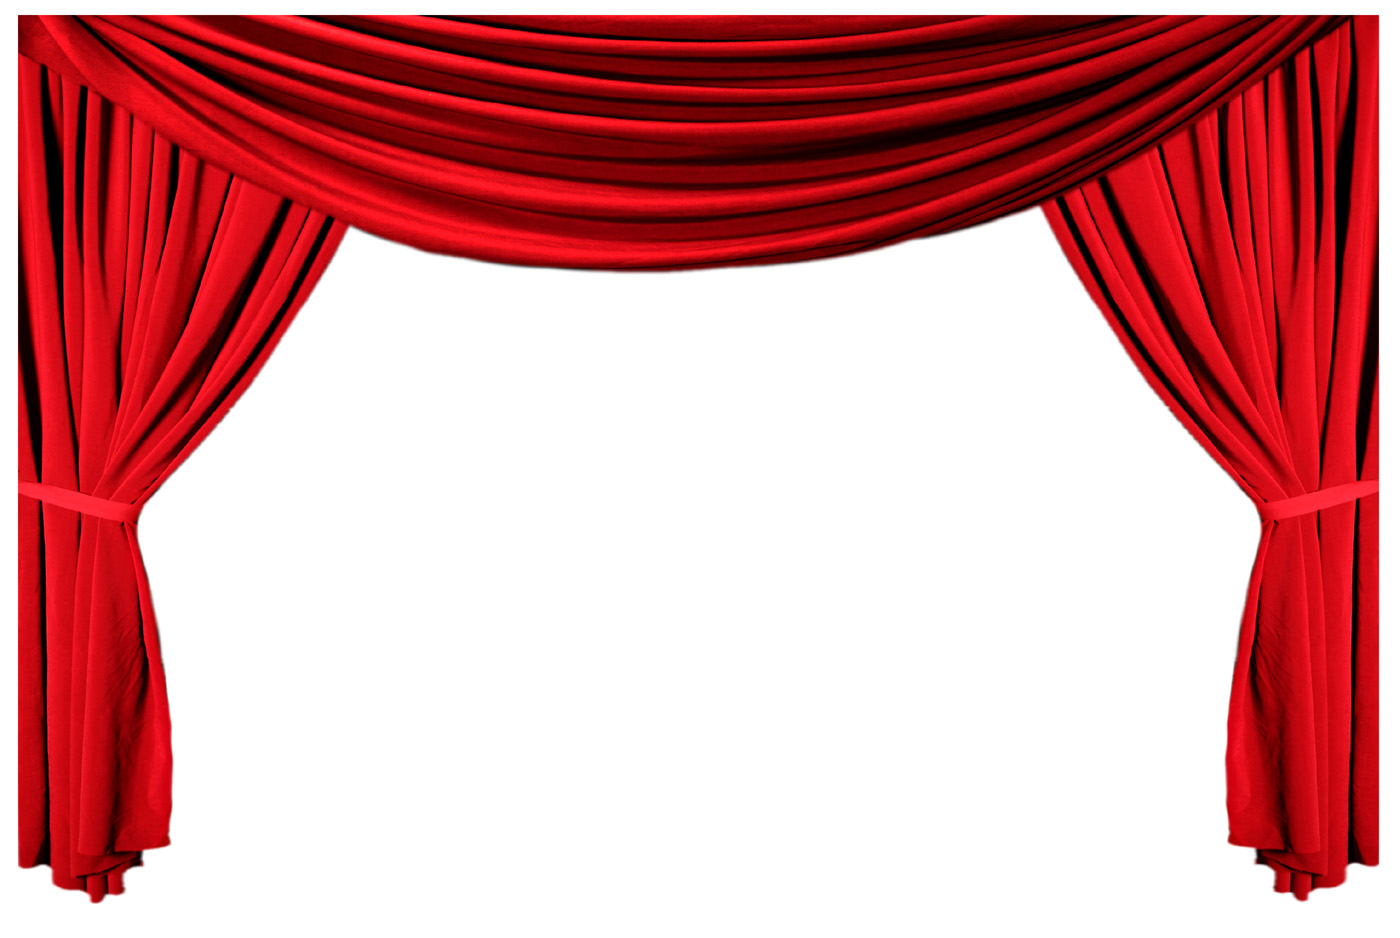 Red curtain curtain 10962